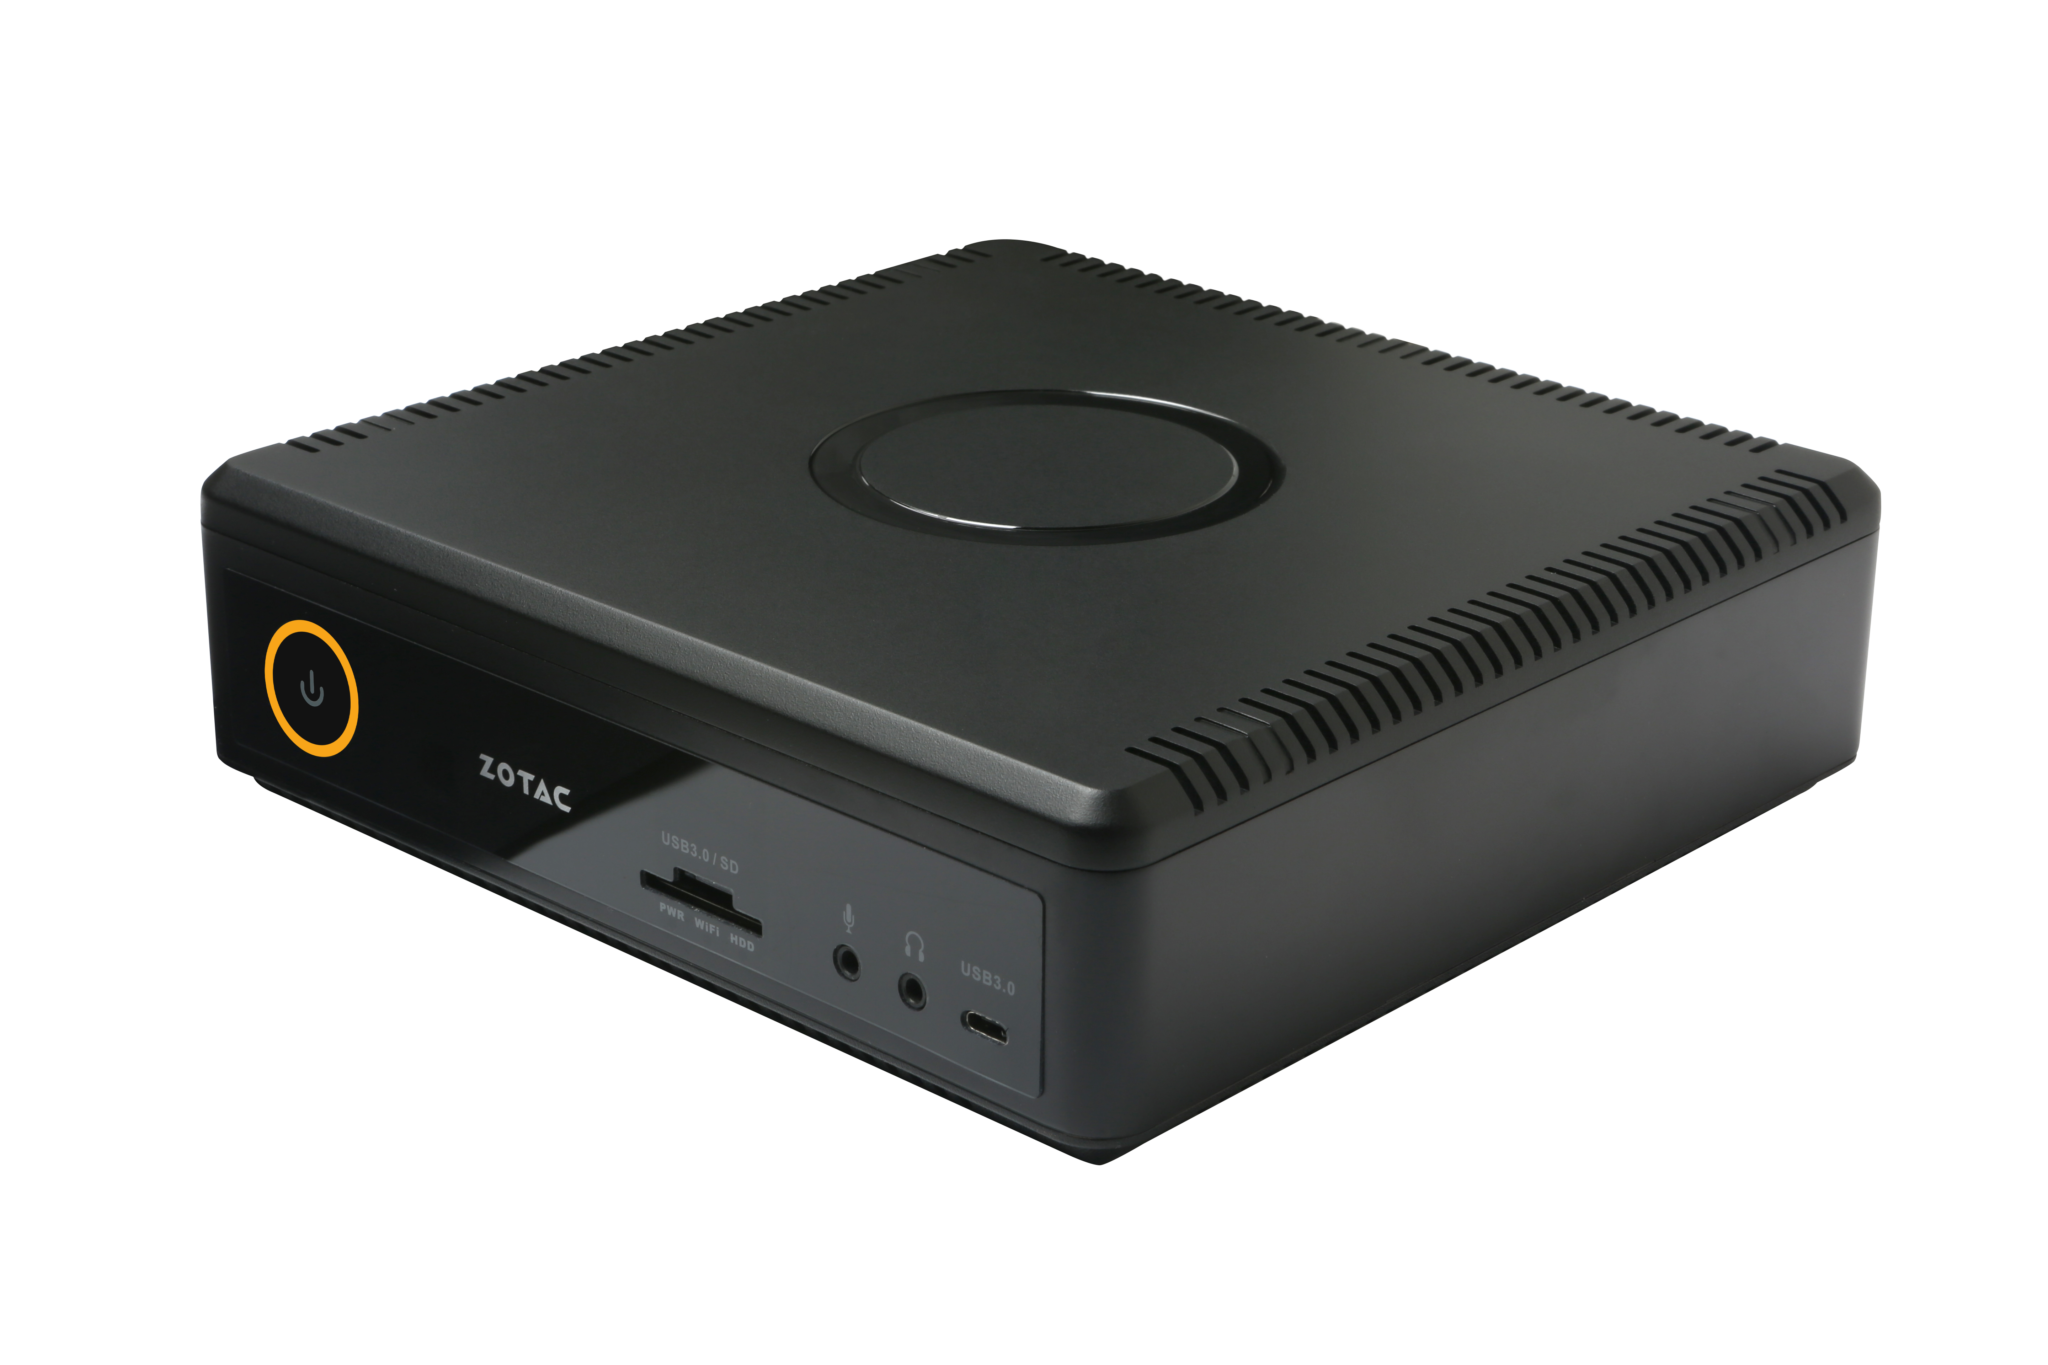 ZOTAC To Show Off Latest Products at CES 2016  #CB8A00